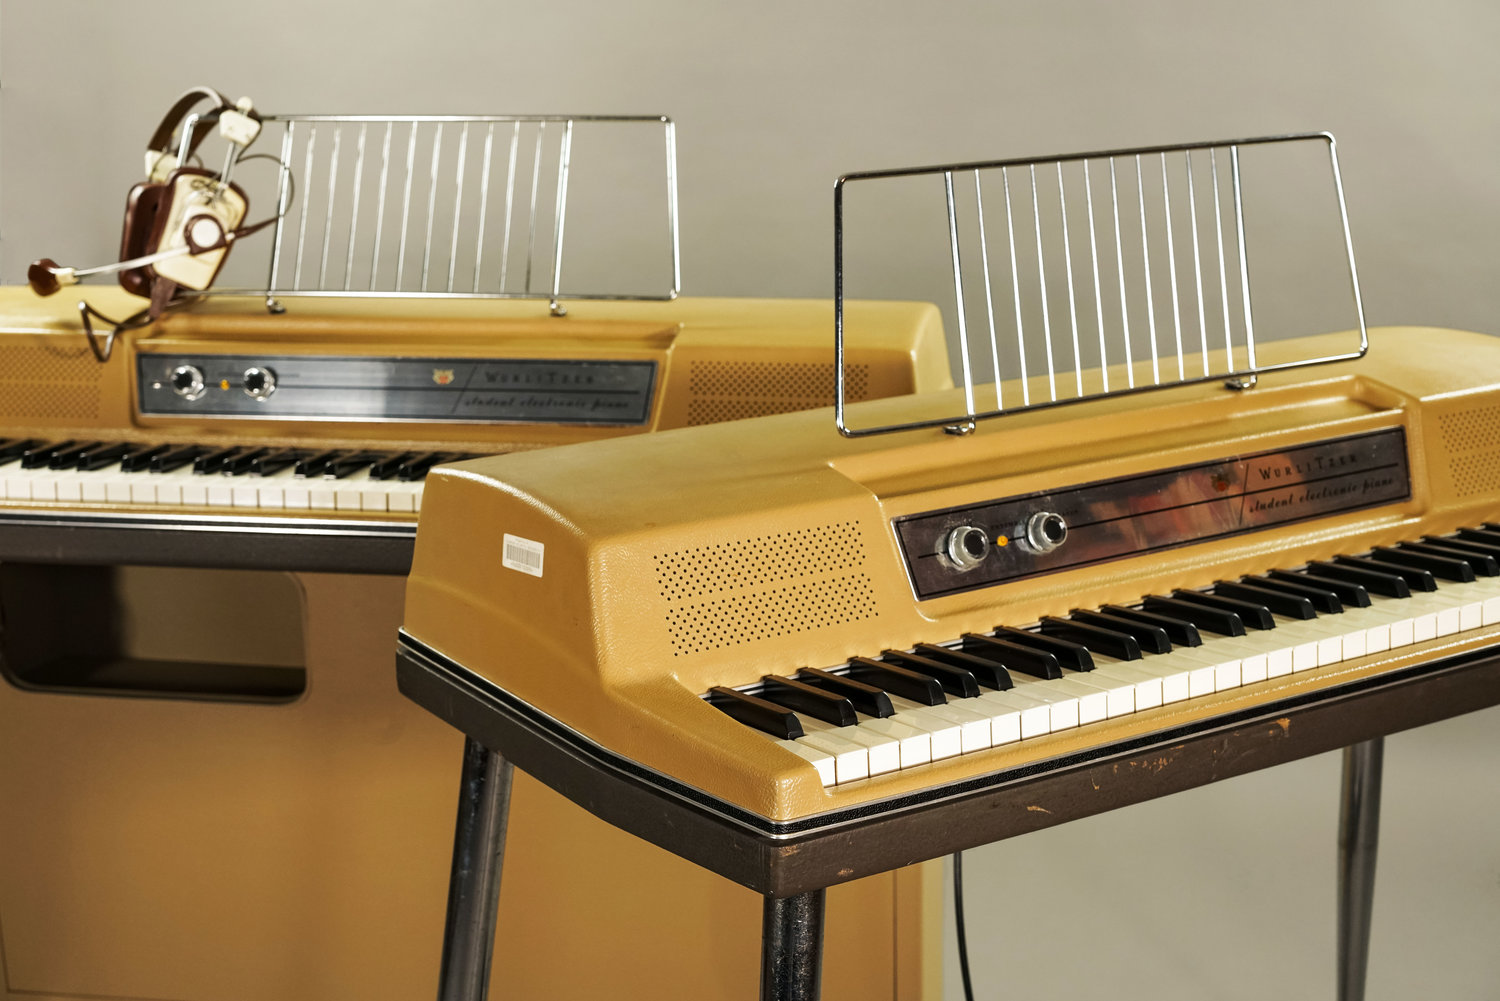 Differences Between the Wurlitzer 140 and 200a